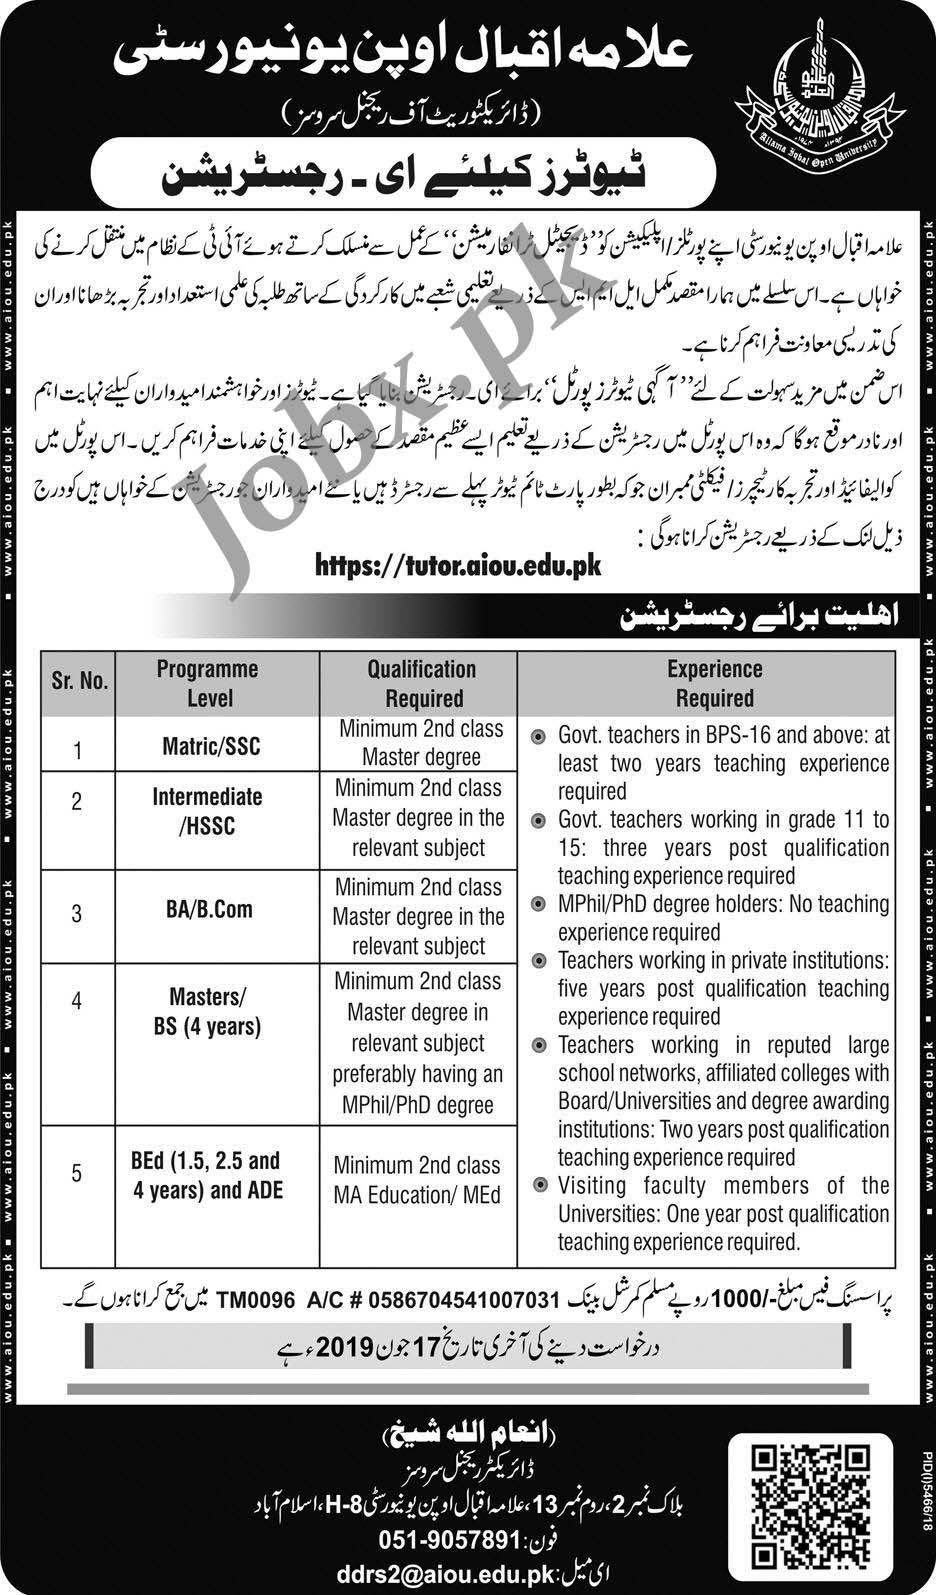 AIOU Tutors Jobs May 2019